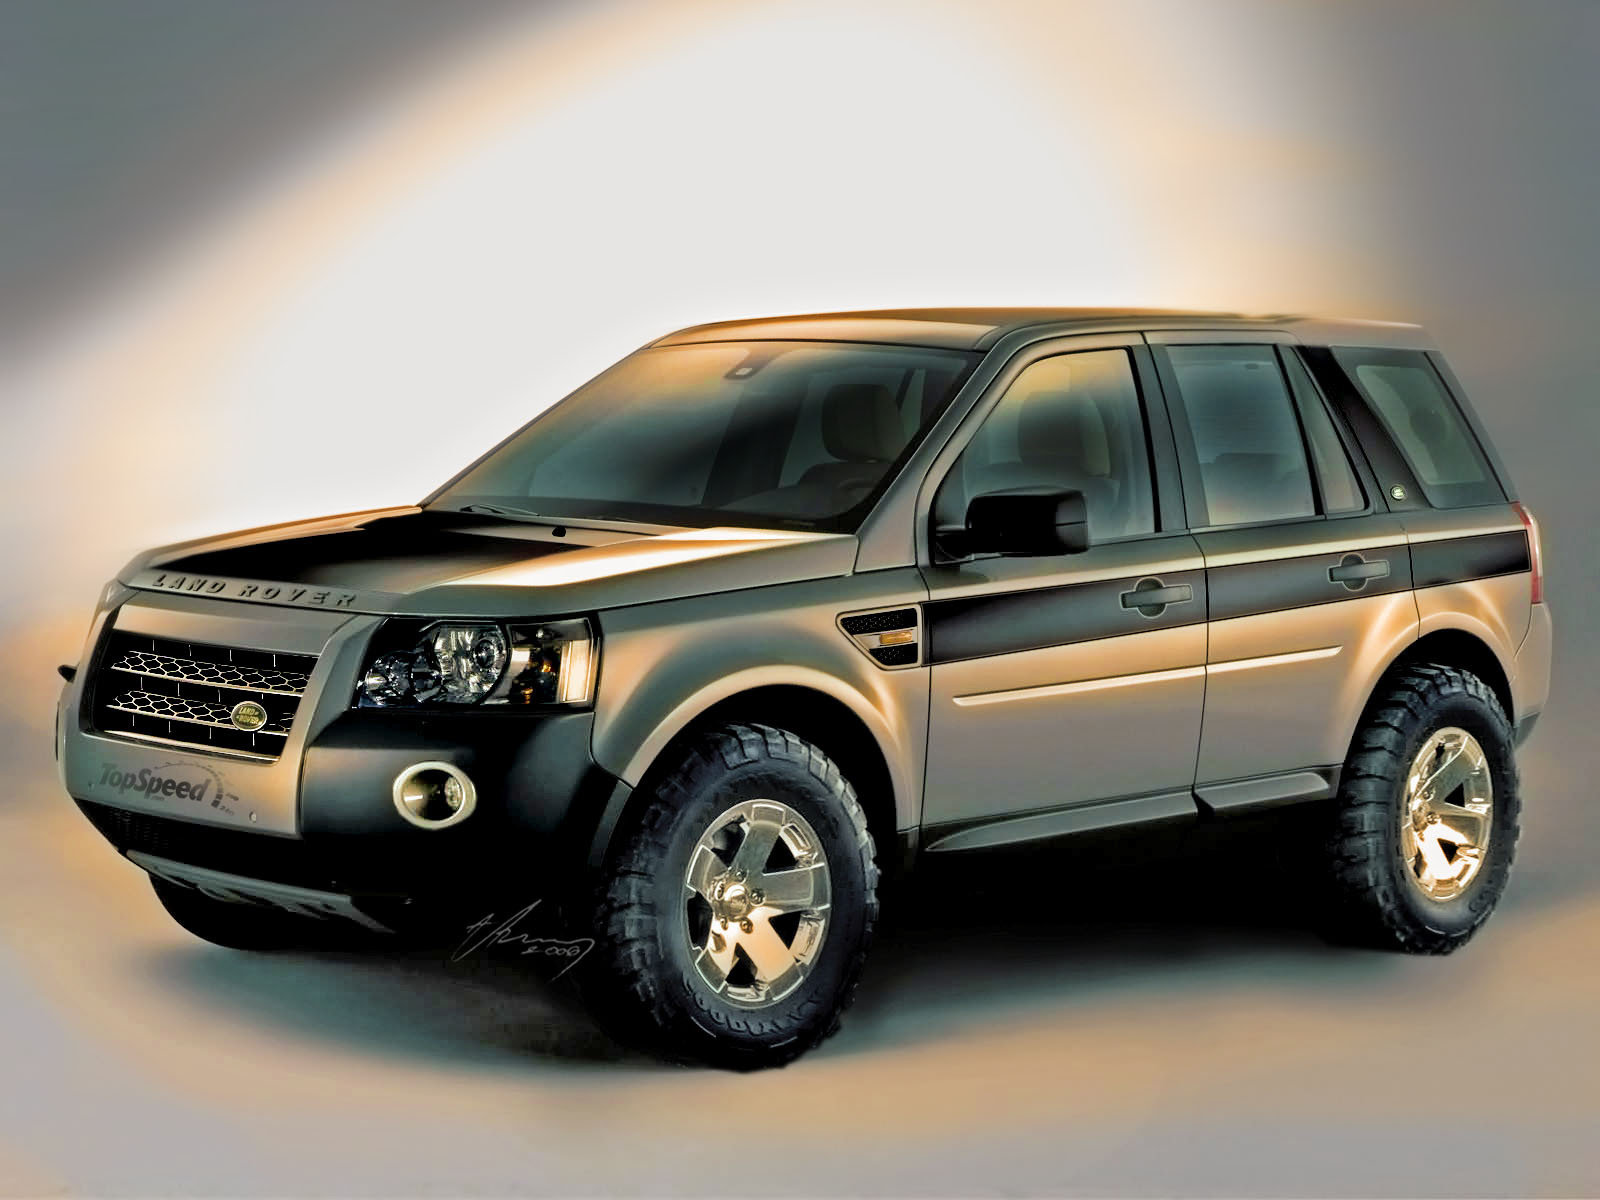 2006 land rover freelander 2 picture 101328 car review top speed. Black Bedroom Furniture Sets. Home Design Ideas